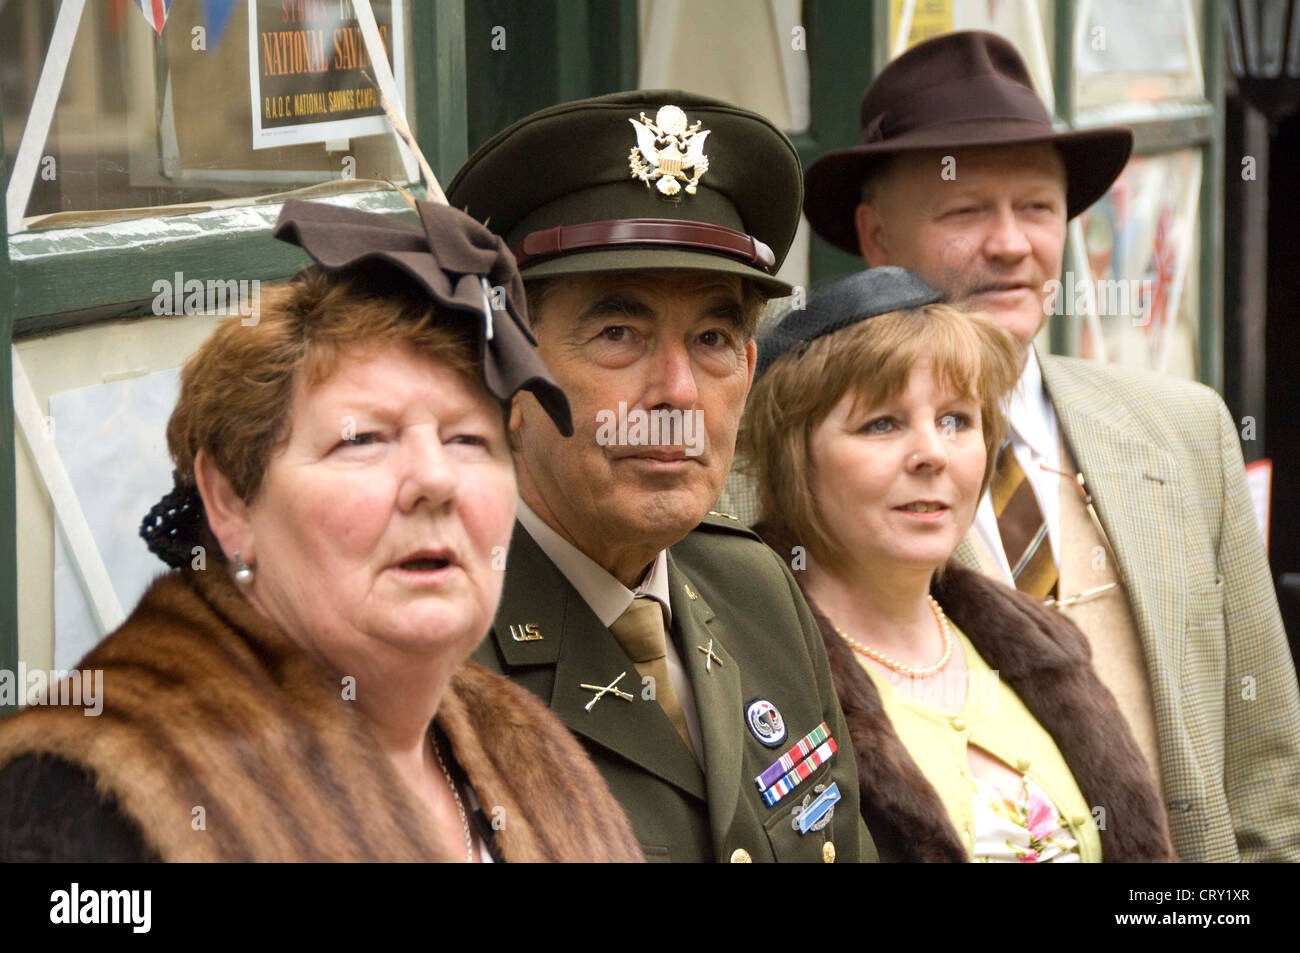 0b105b0eed9 Solders and civilians at the Haworth 1940s weekend - Stock Image